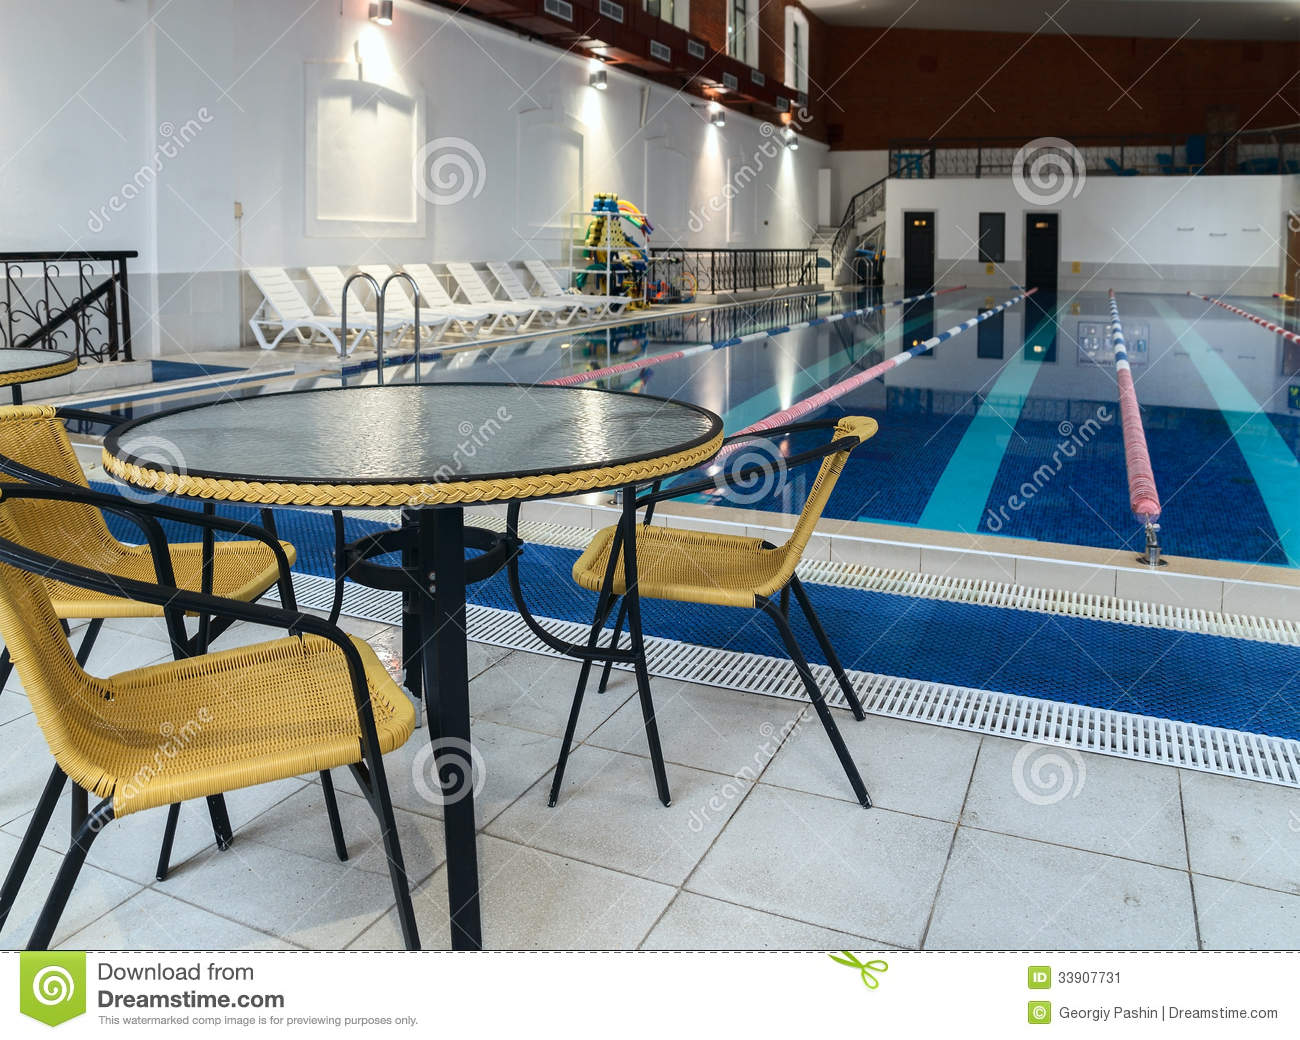 Table and chairs near swimming pool stock image image for Poolside table and chairs